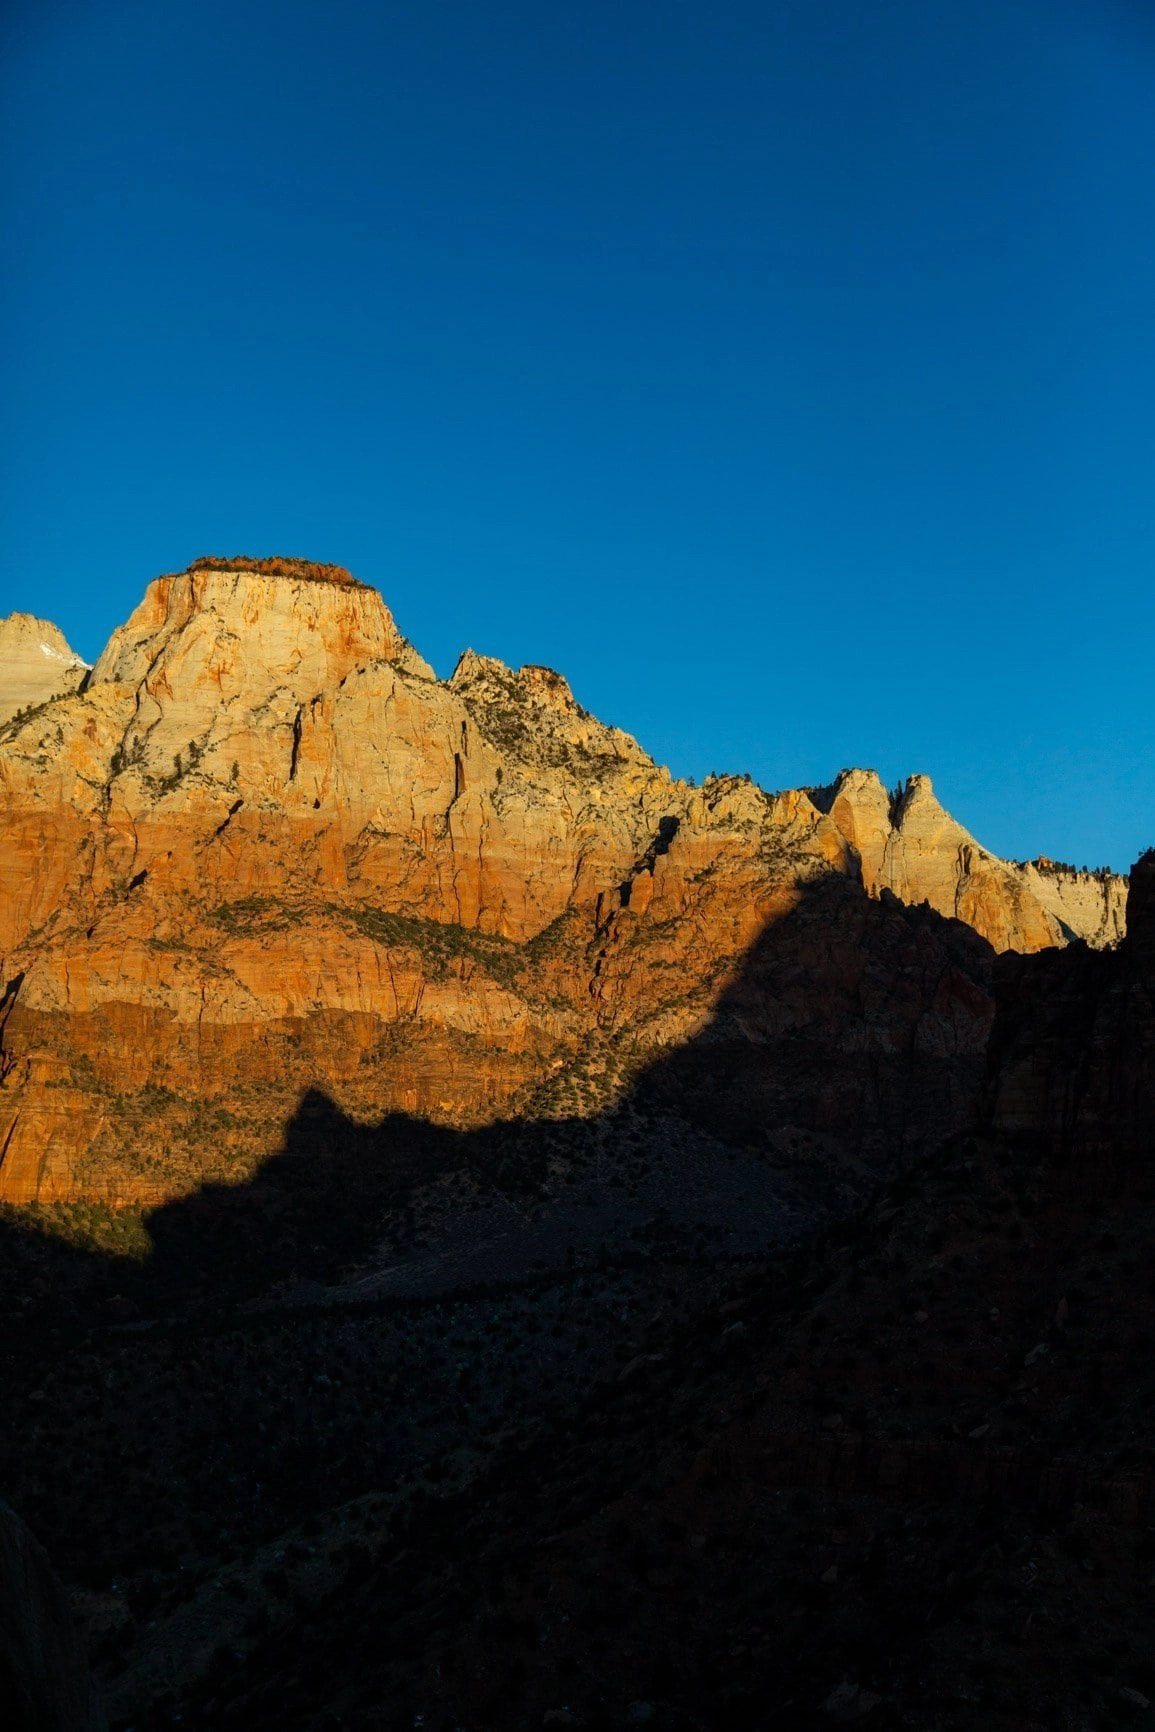 shadows on the walls in zion canyon. PArt of the zion elopement guide for planning your wedding day in zion national park